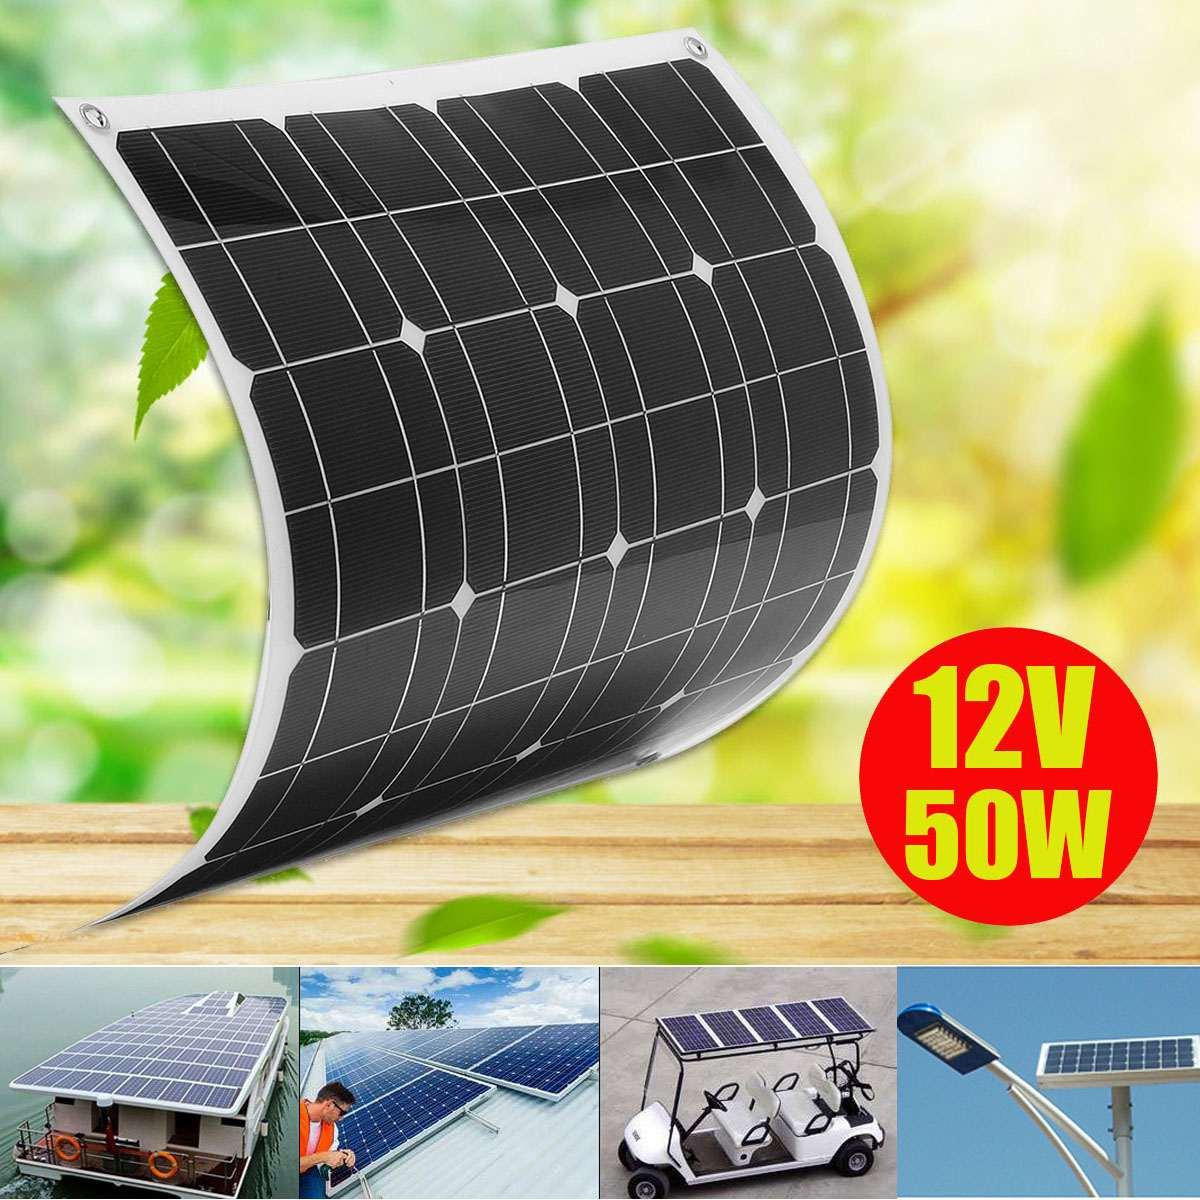 KINCO 12V/50W Semi-Flexible Solar Panel Monocrystalline Silicon Solar System Power Supply For Car Battery Charger